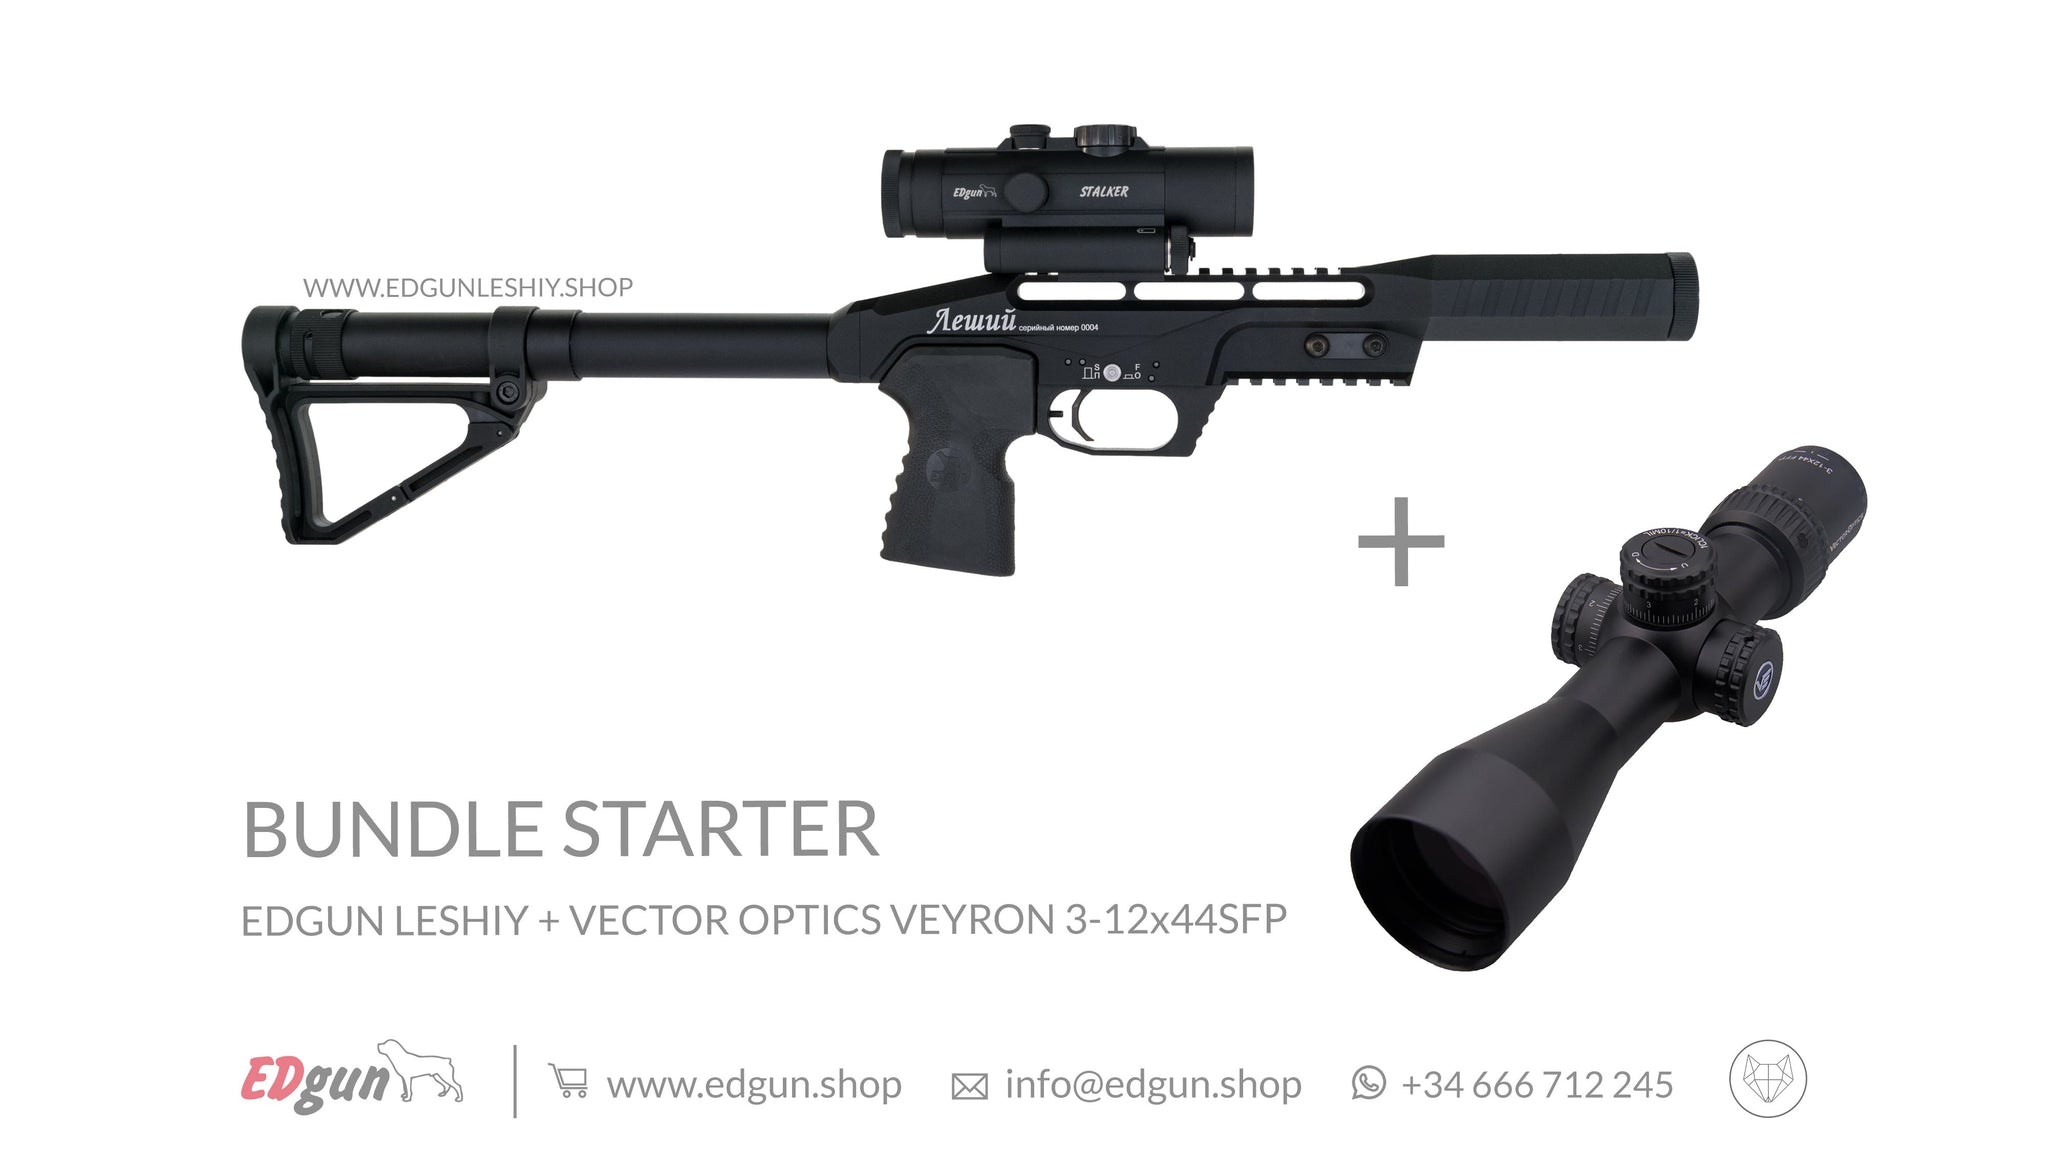 KIT · BUNDLE STARTER: <br> Edgun Leshiy Black + Vector Optics Veyron 3-12x44 SFP